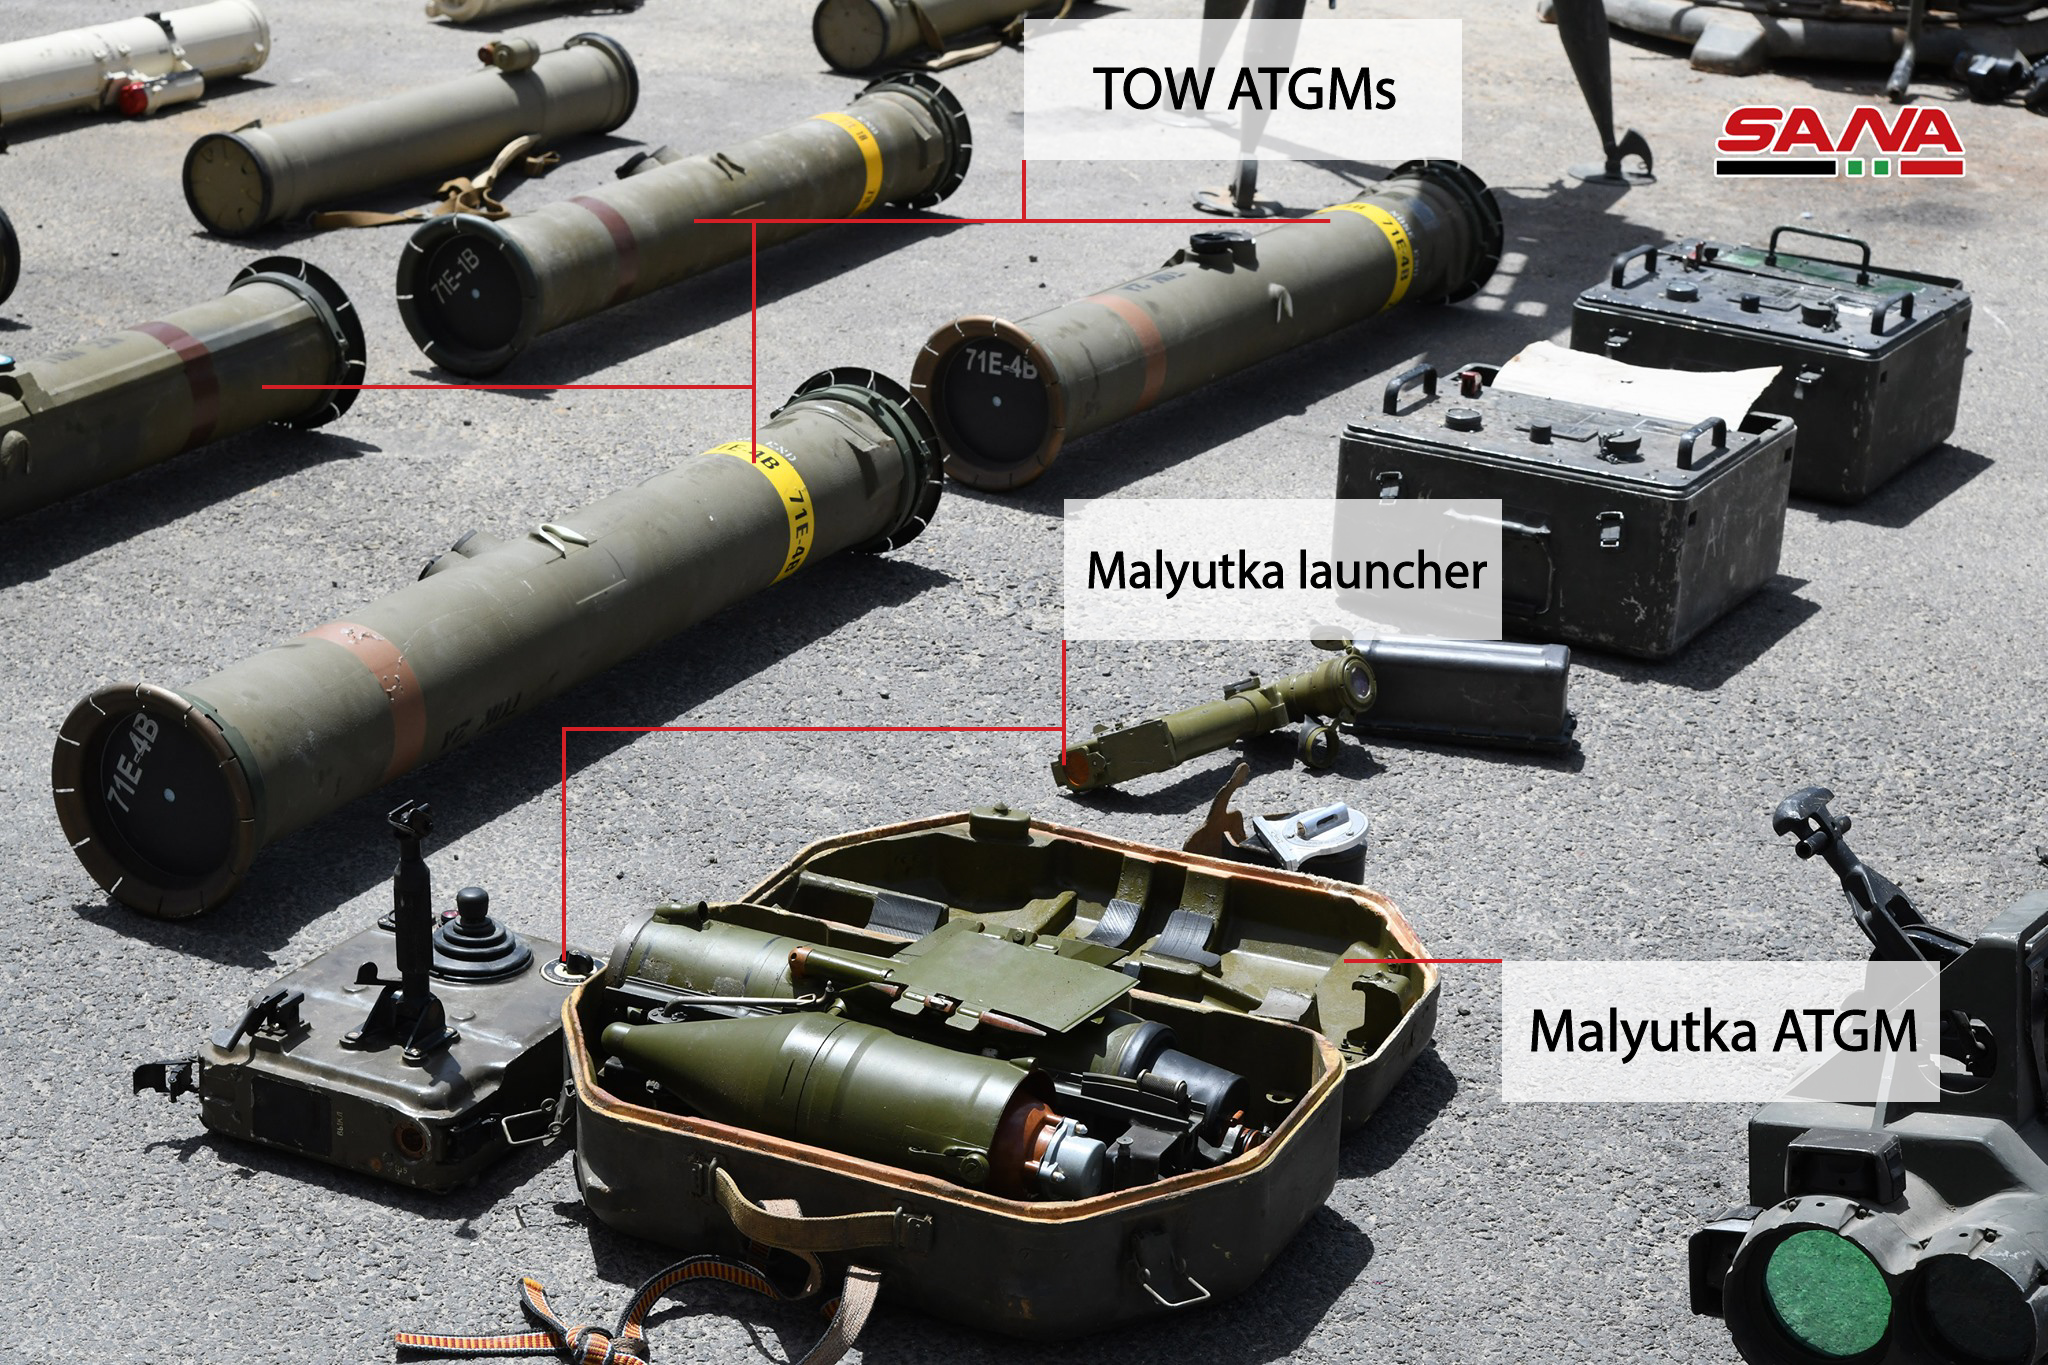 Army Uncovers Loads Of Guided Missiles, Armed Drone In Southern Syria (Video, Photos)